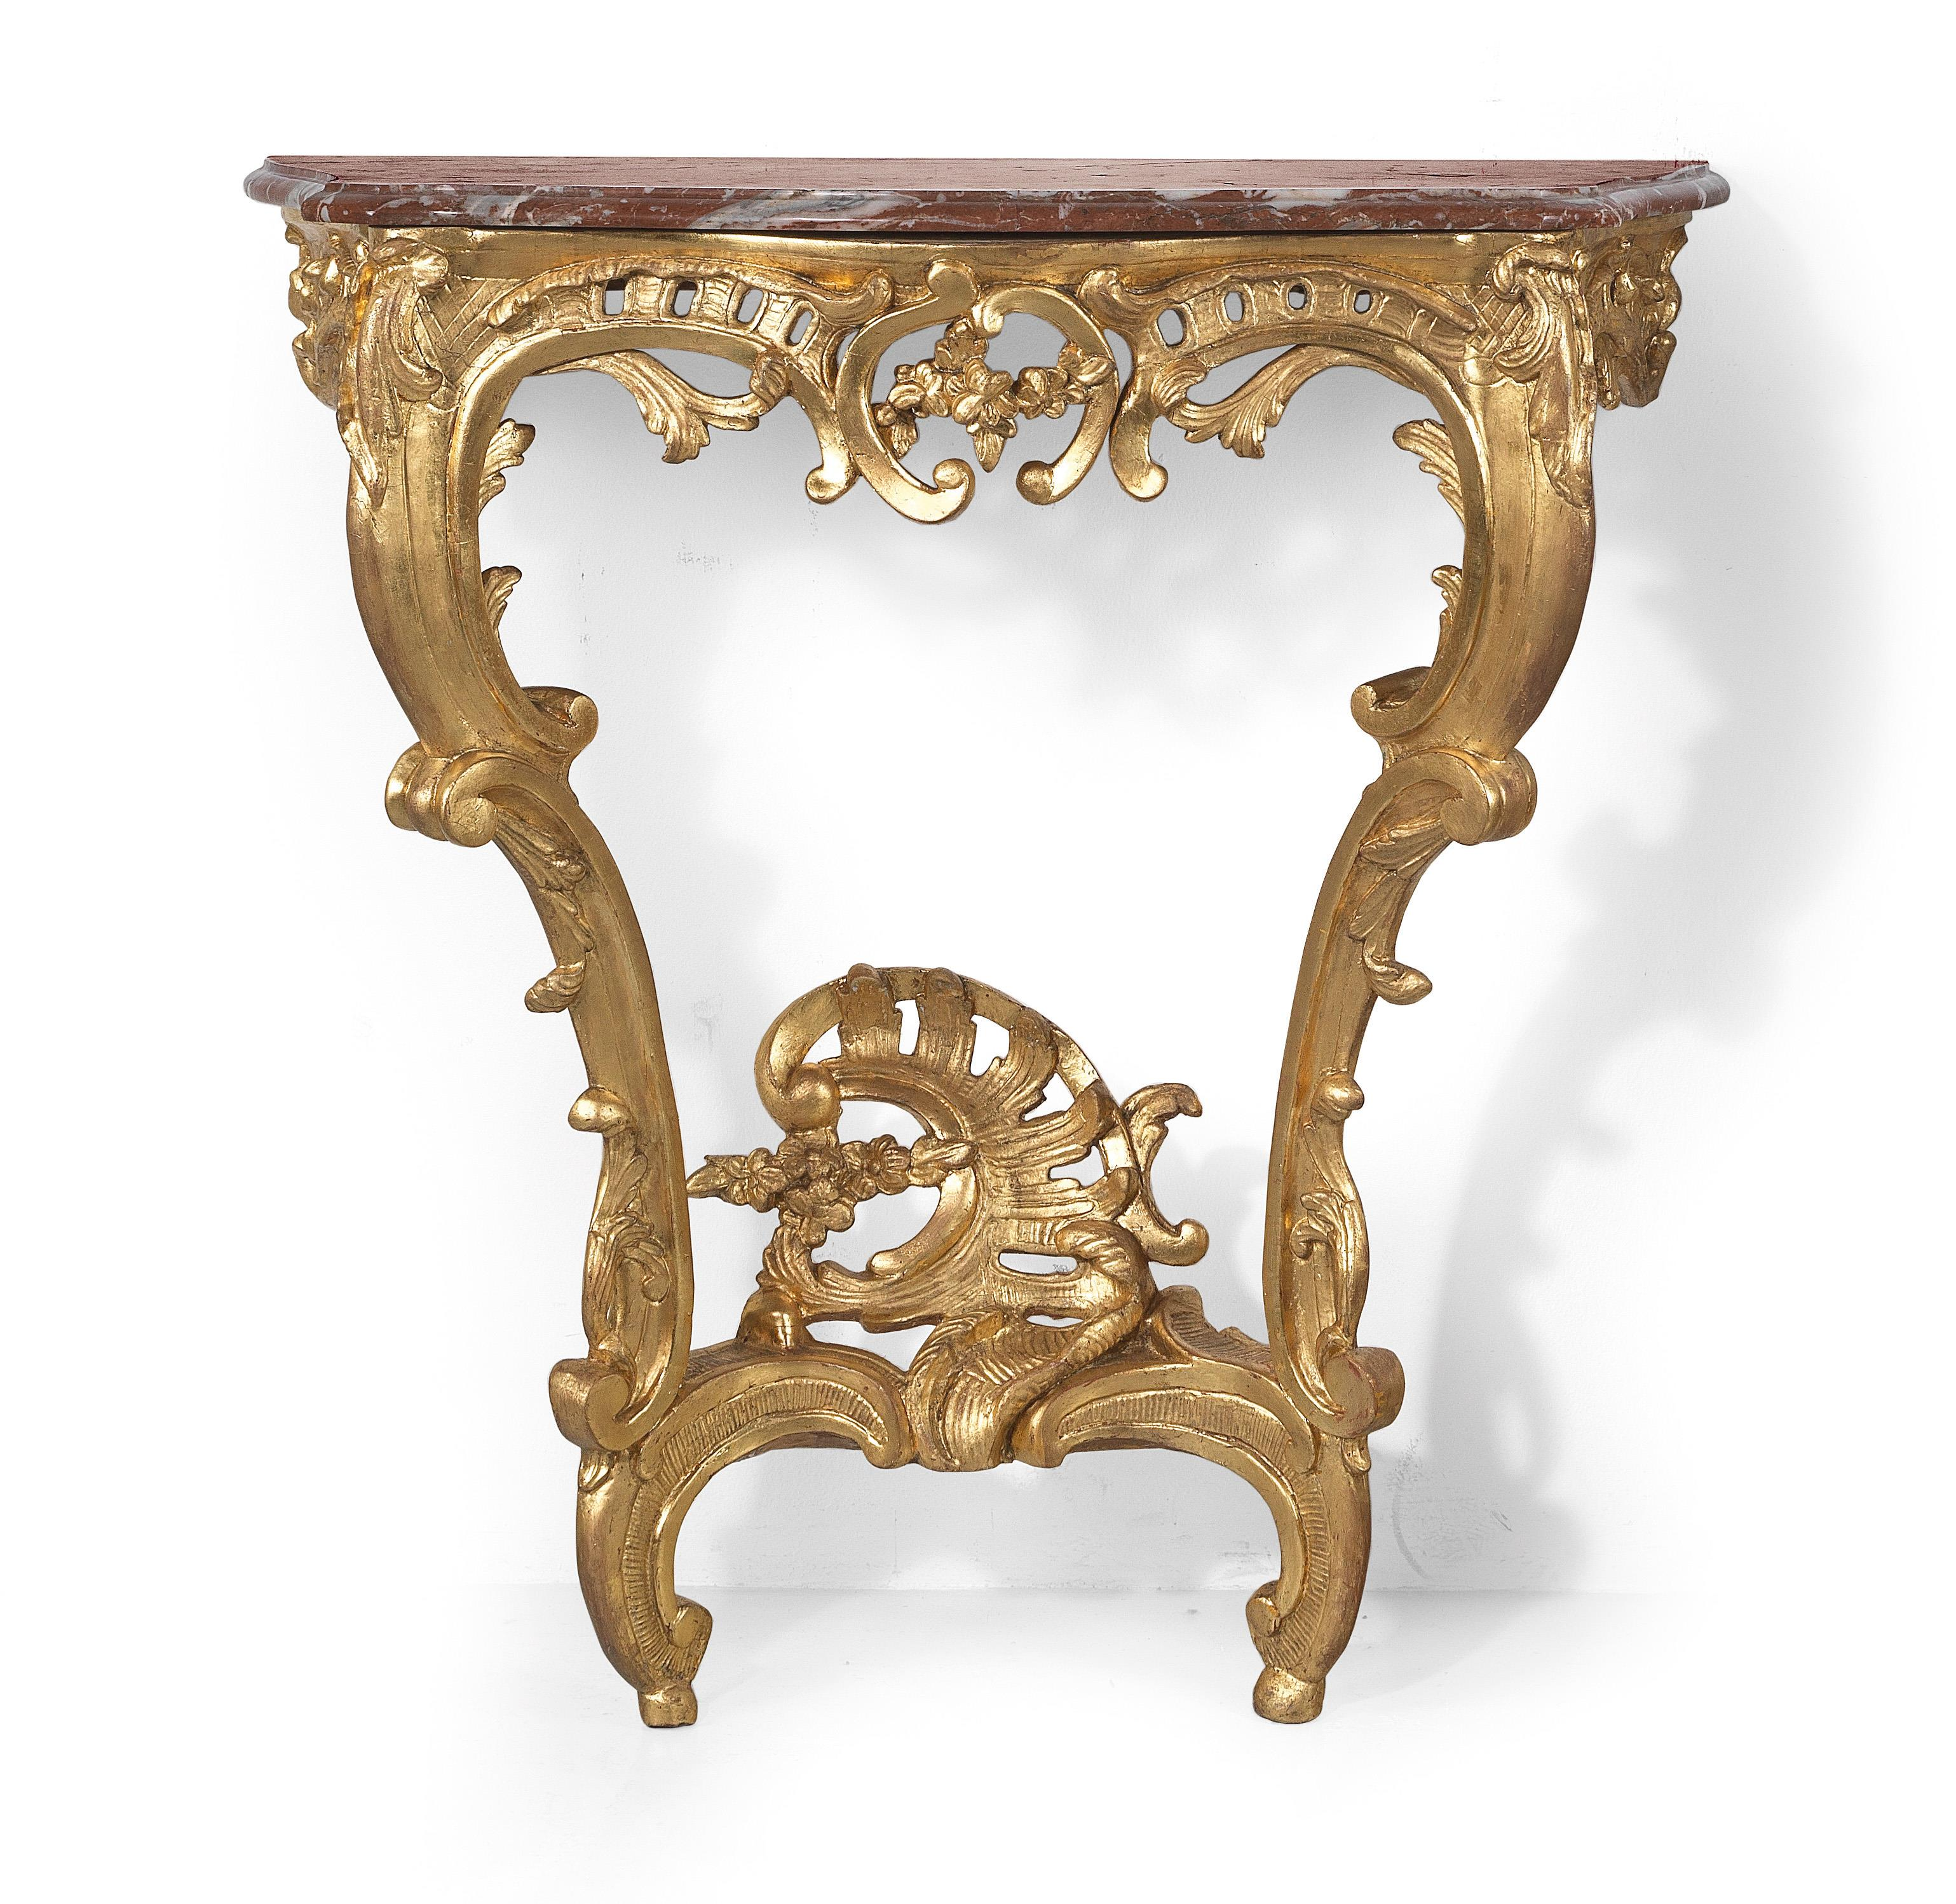 Console Table Works Of Art 2018 10 25 Realized Price Eur 10 625 Dorotheum